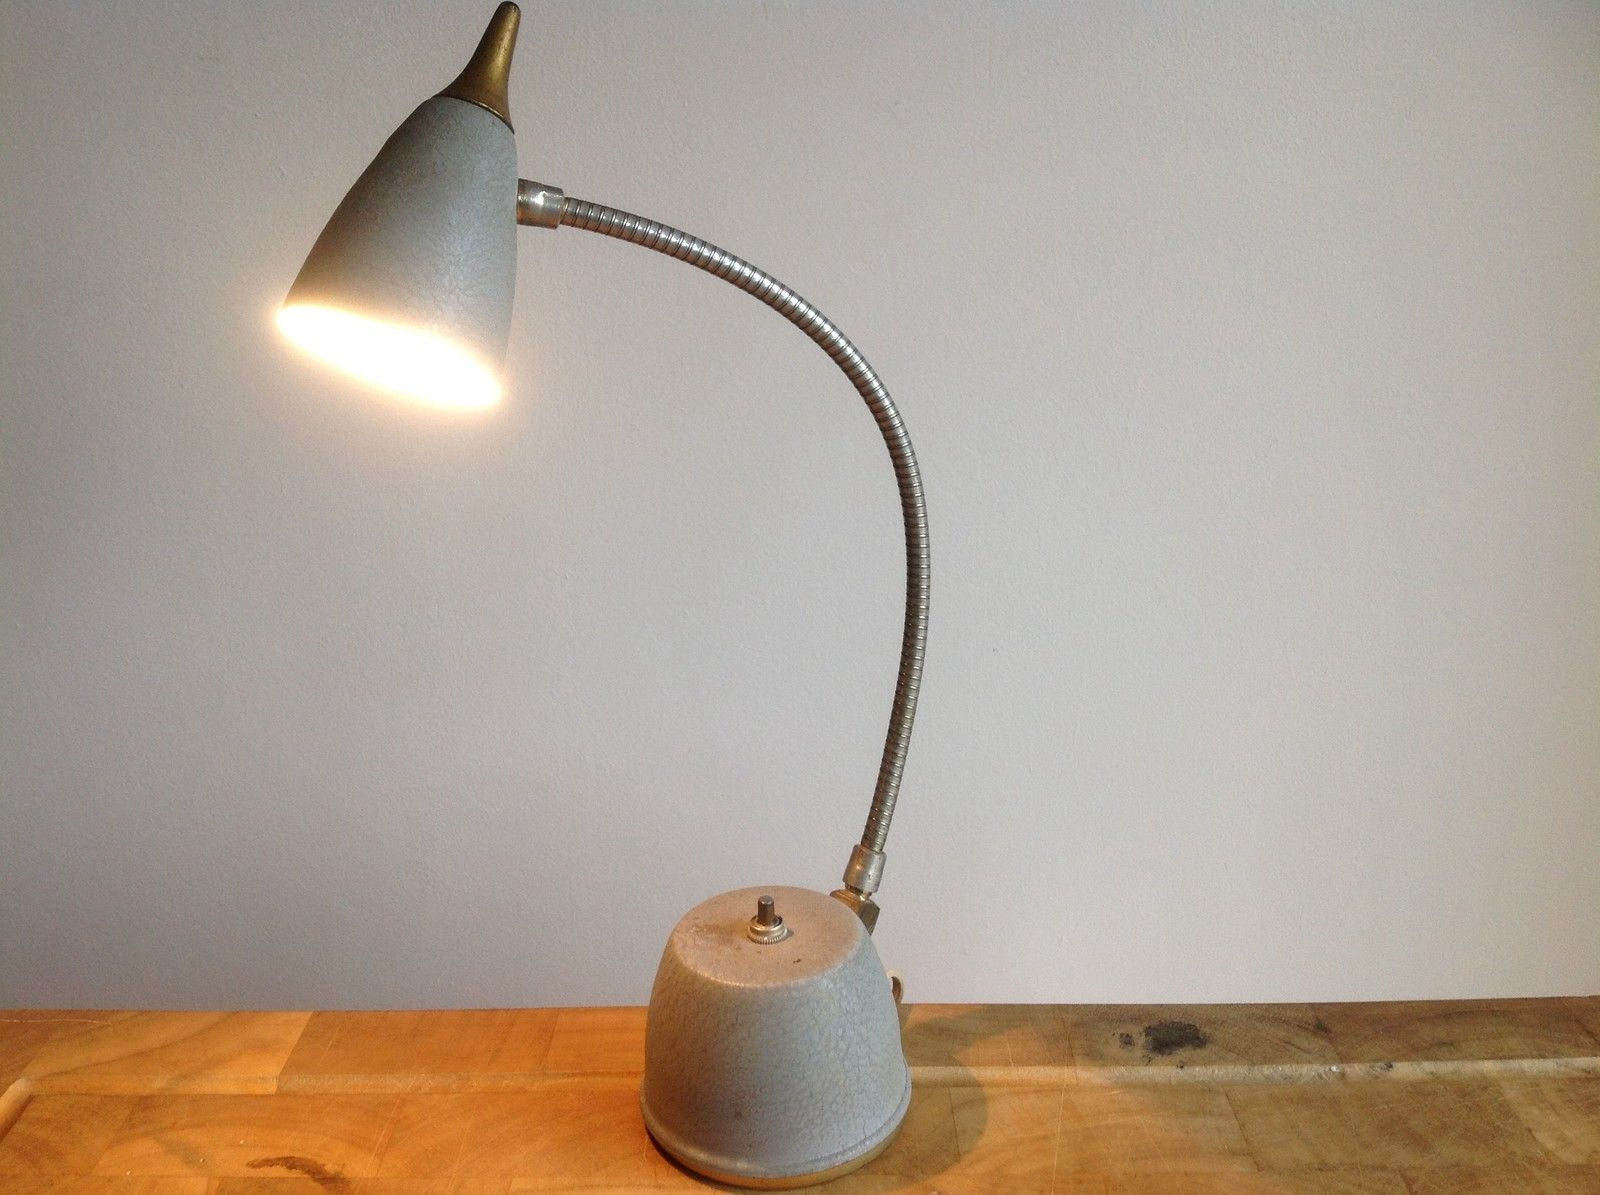 Vintage 50s Articulated Lamp Enamel Italian Gooseneck Desk Lamp – Gooseneck Desk Lamps